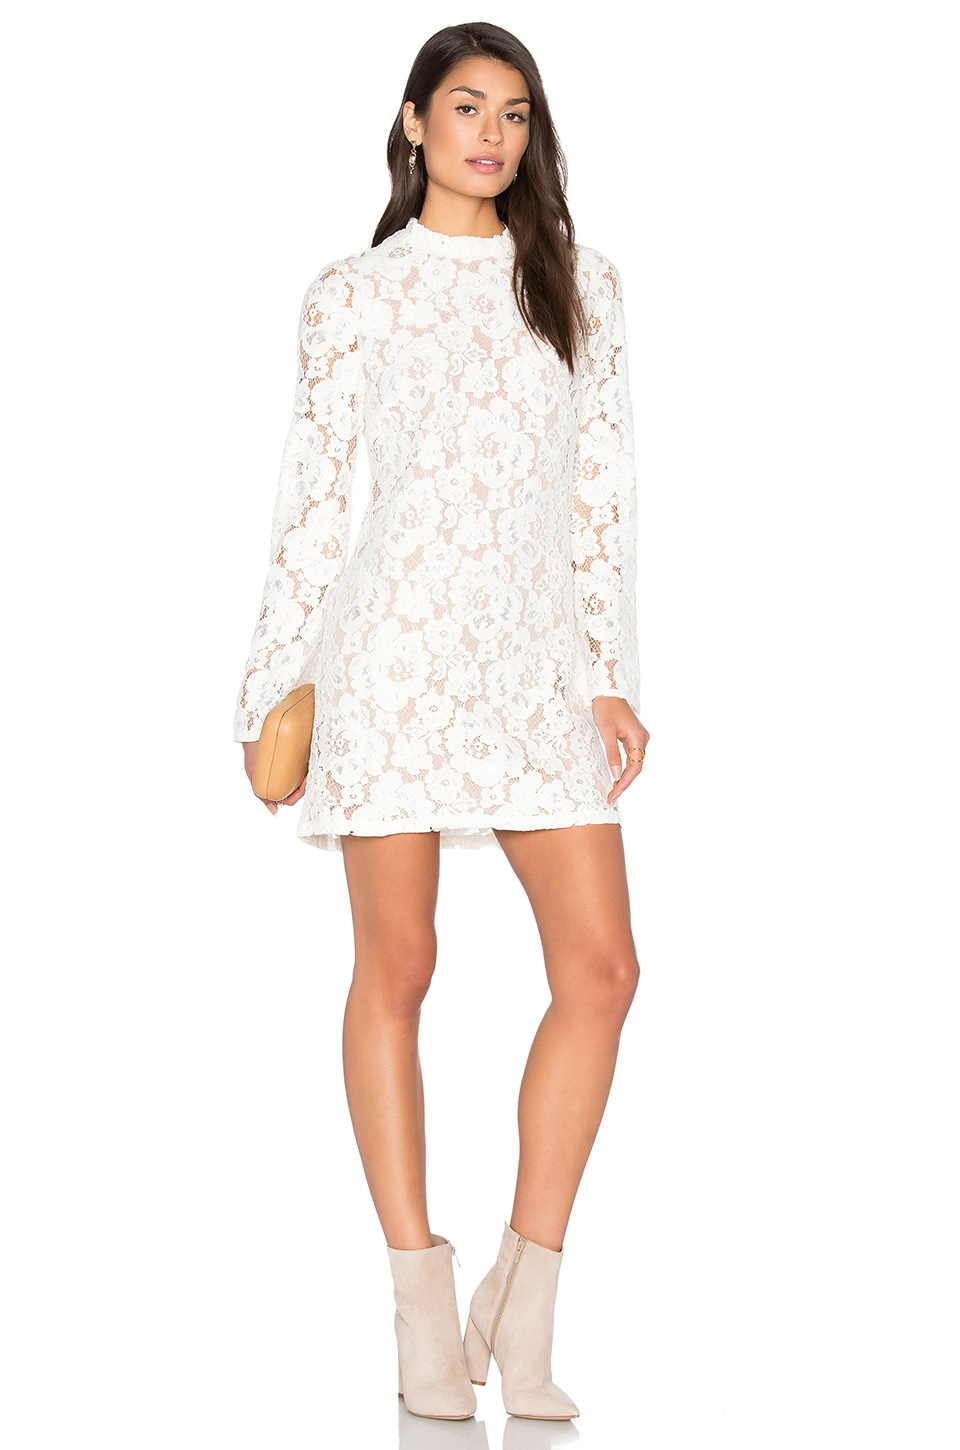 WAYF Belvue Lace Dress in Ivory